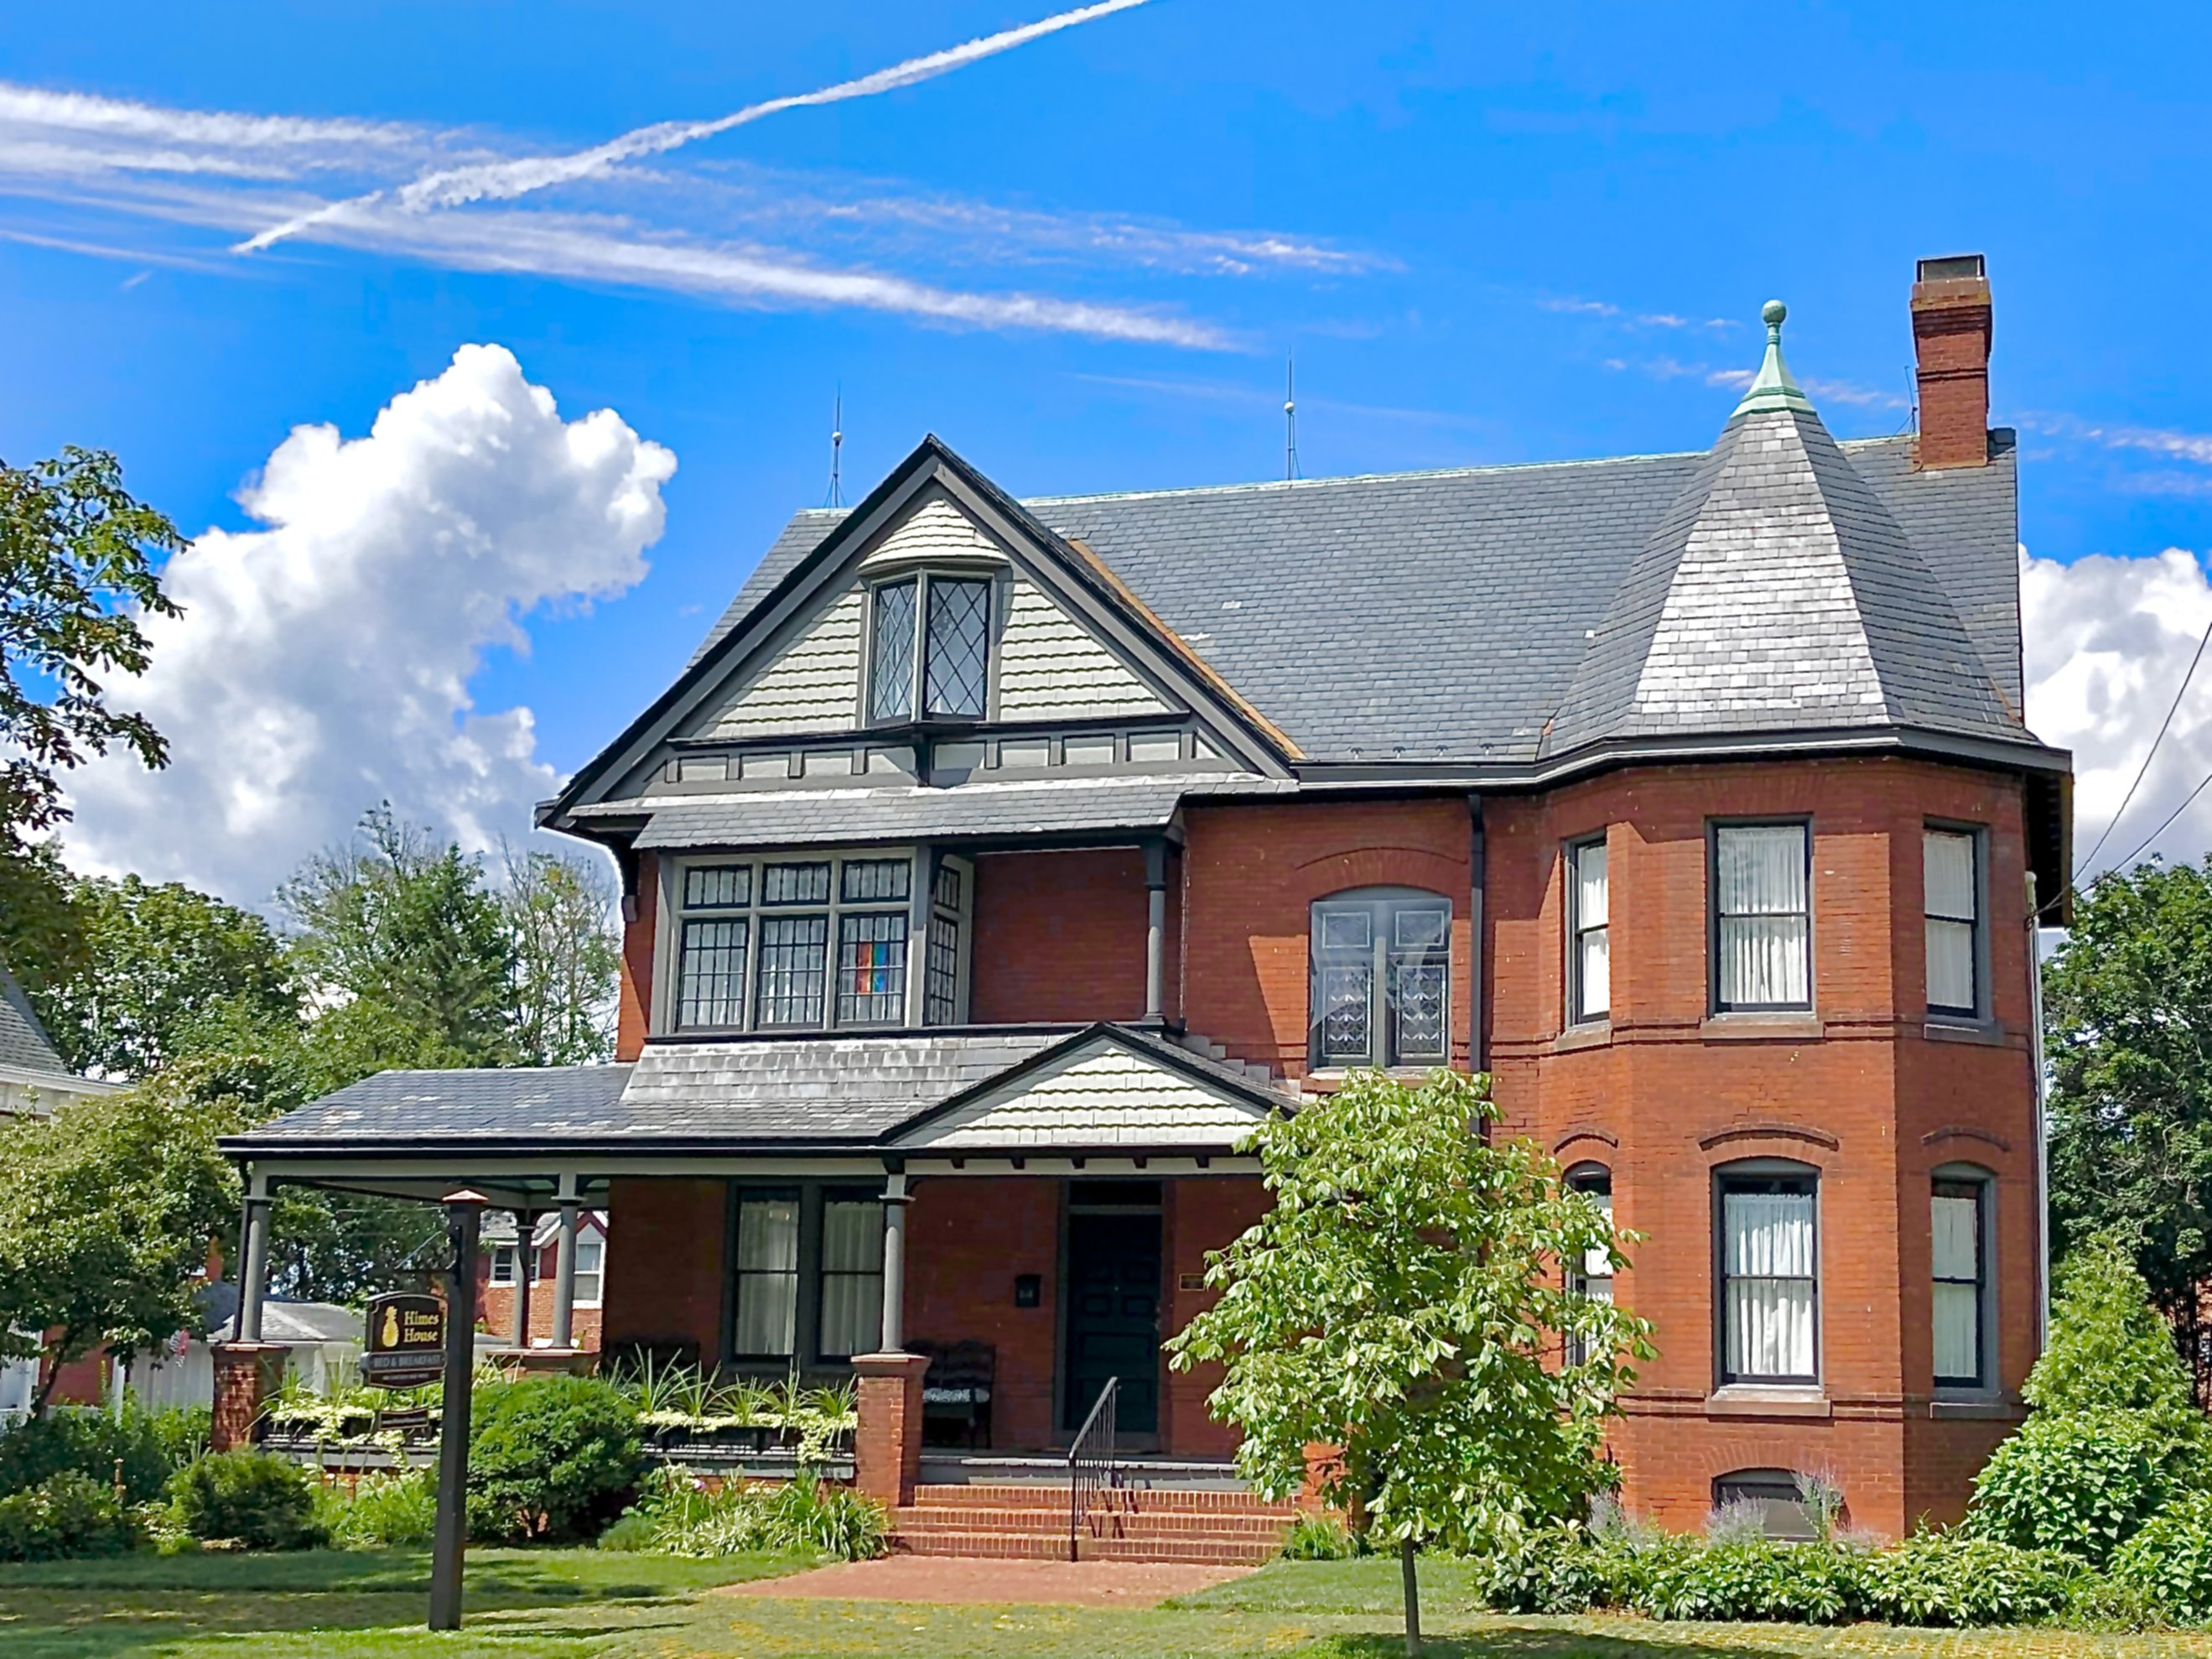 A large brick building at Himes House Bed & Breakfast.